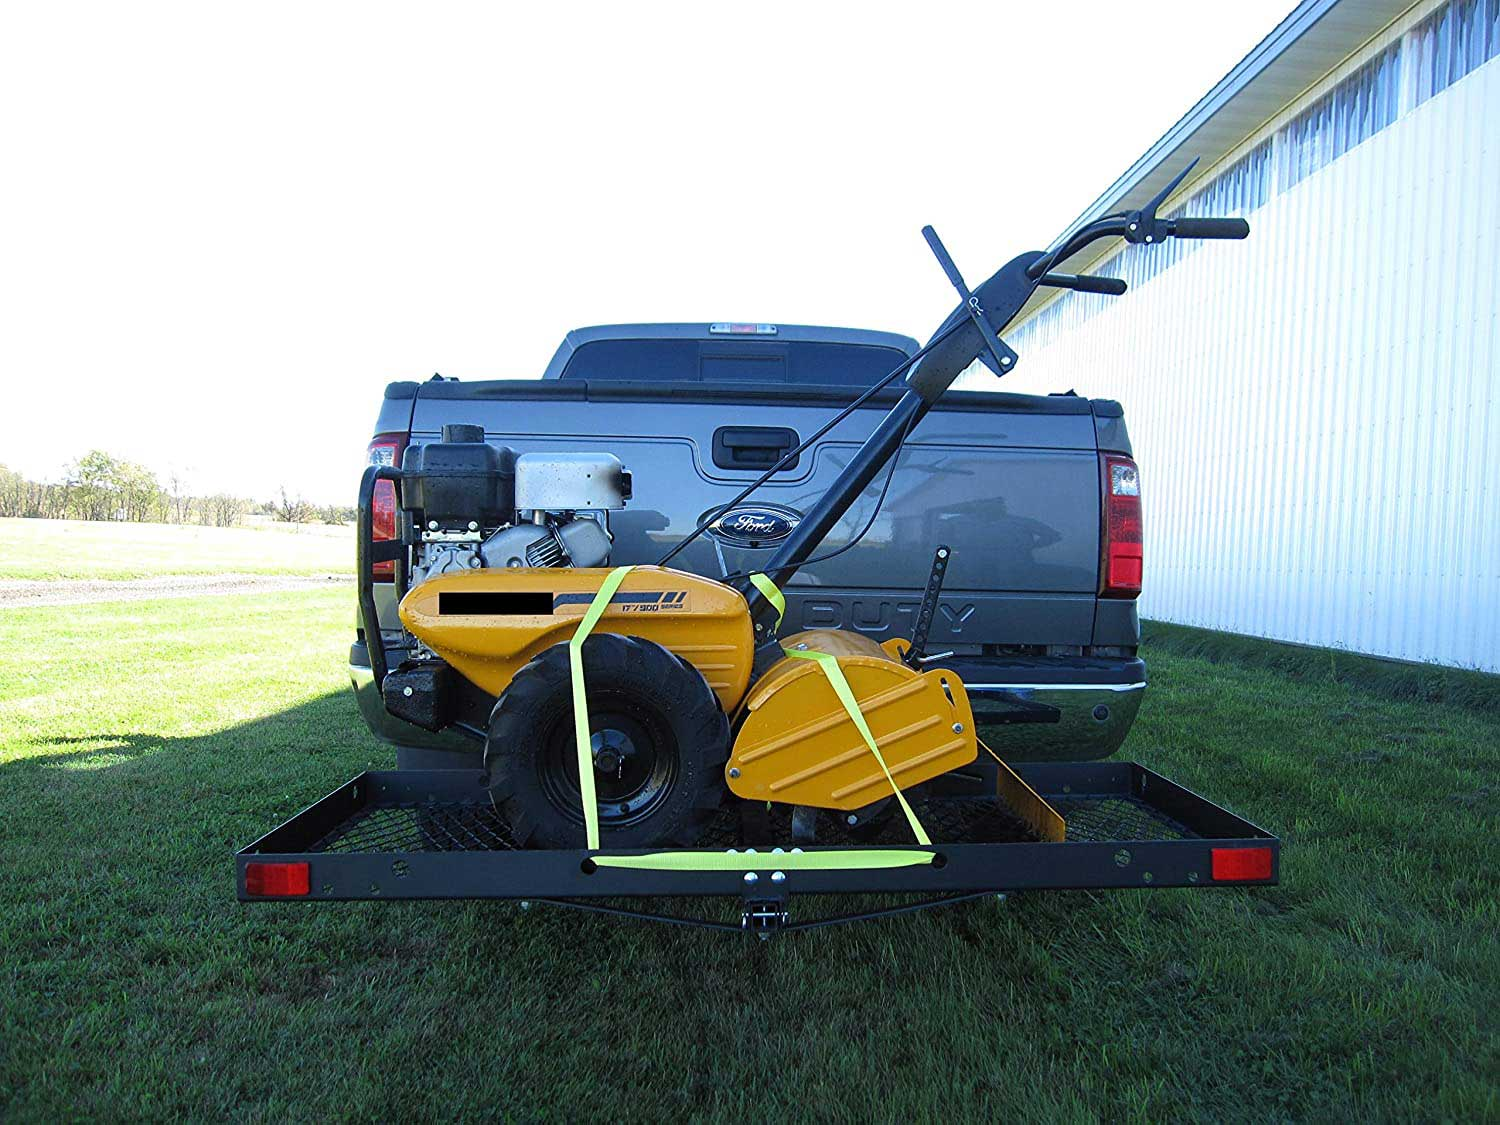 cargo carrier added to hitch of truck